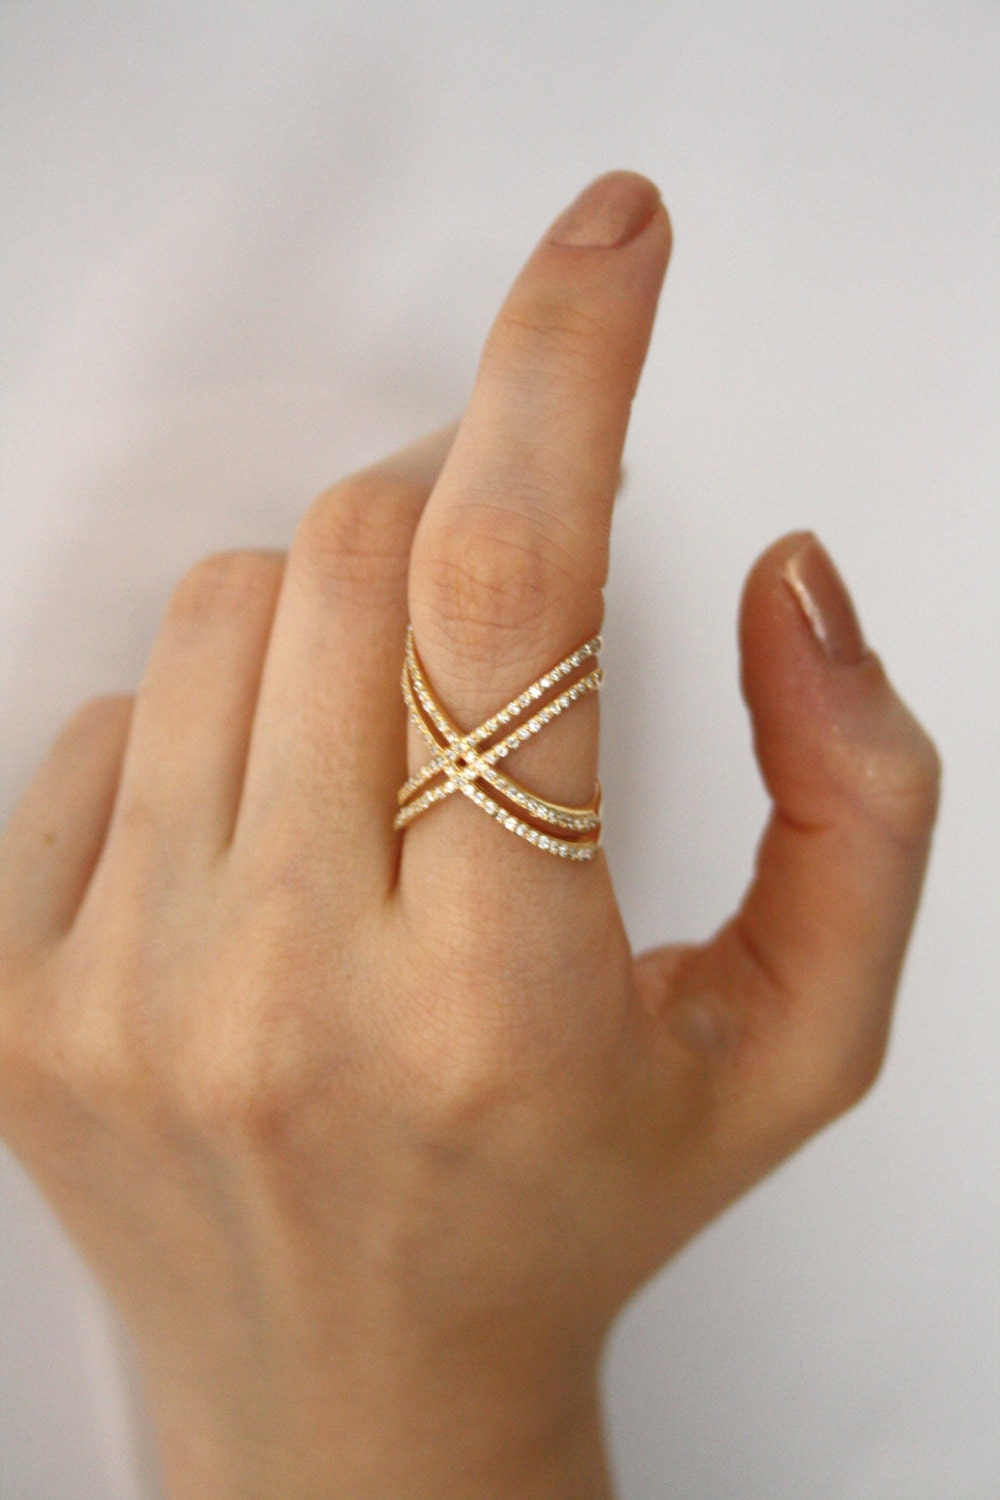 Gold X Ring With Cz Stones Engagement Ring Criss Cross